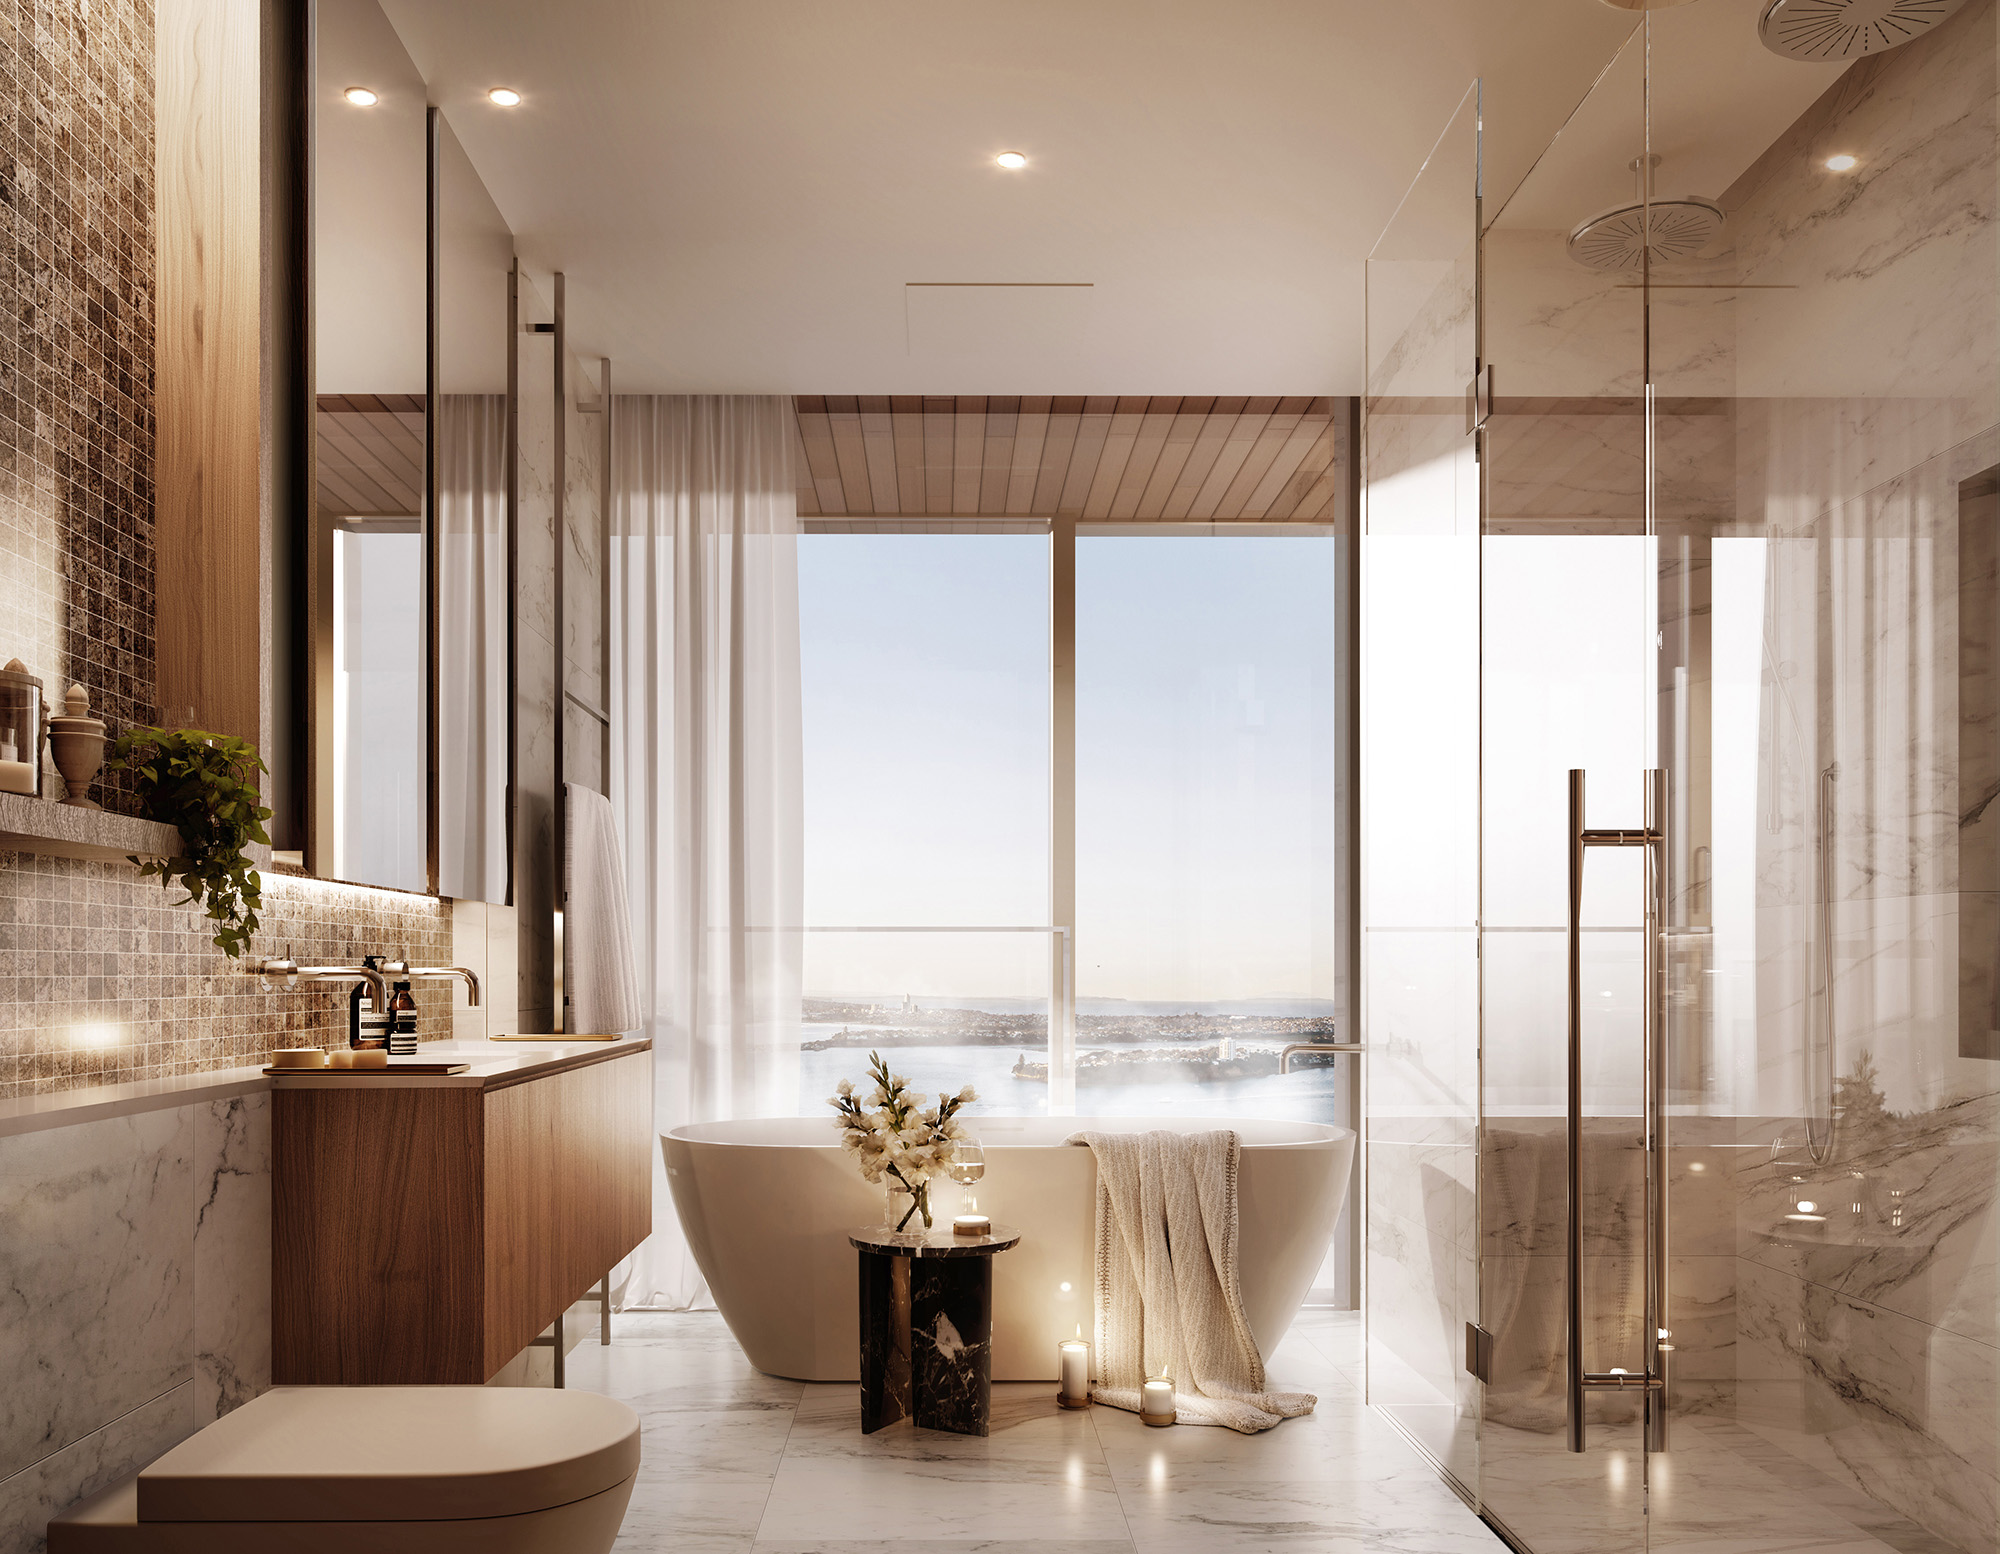 The ensuite features a double vanity, double shower and freestanding bath with views to the harbour beyond.